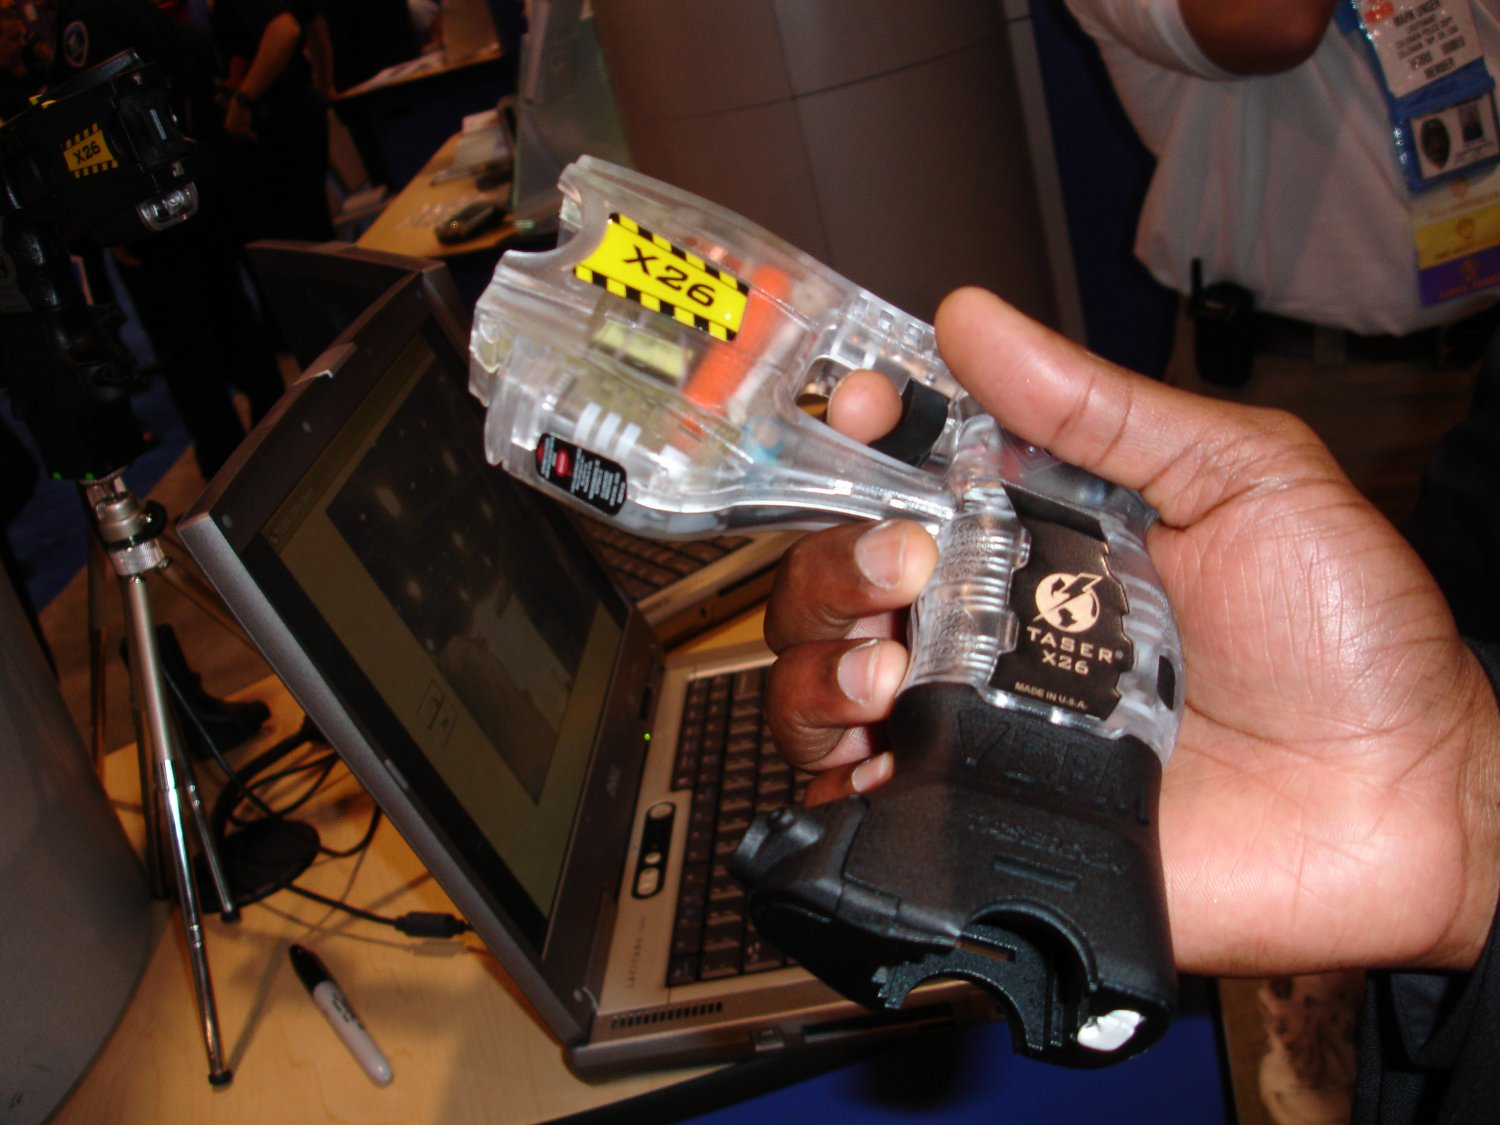 Taser%20X26%20VDPM 2 <!  :en  >TASER X26 Less Lethal Weapon System Gets Audio/Video Recording Capability<!  :  >